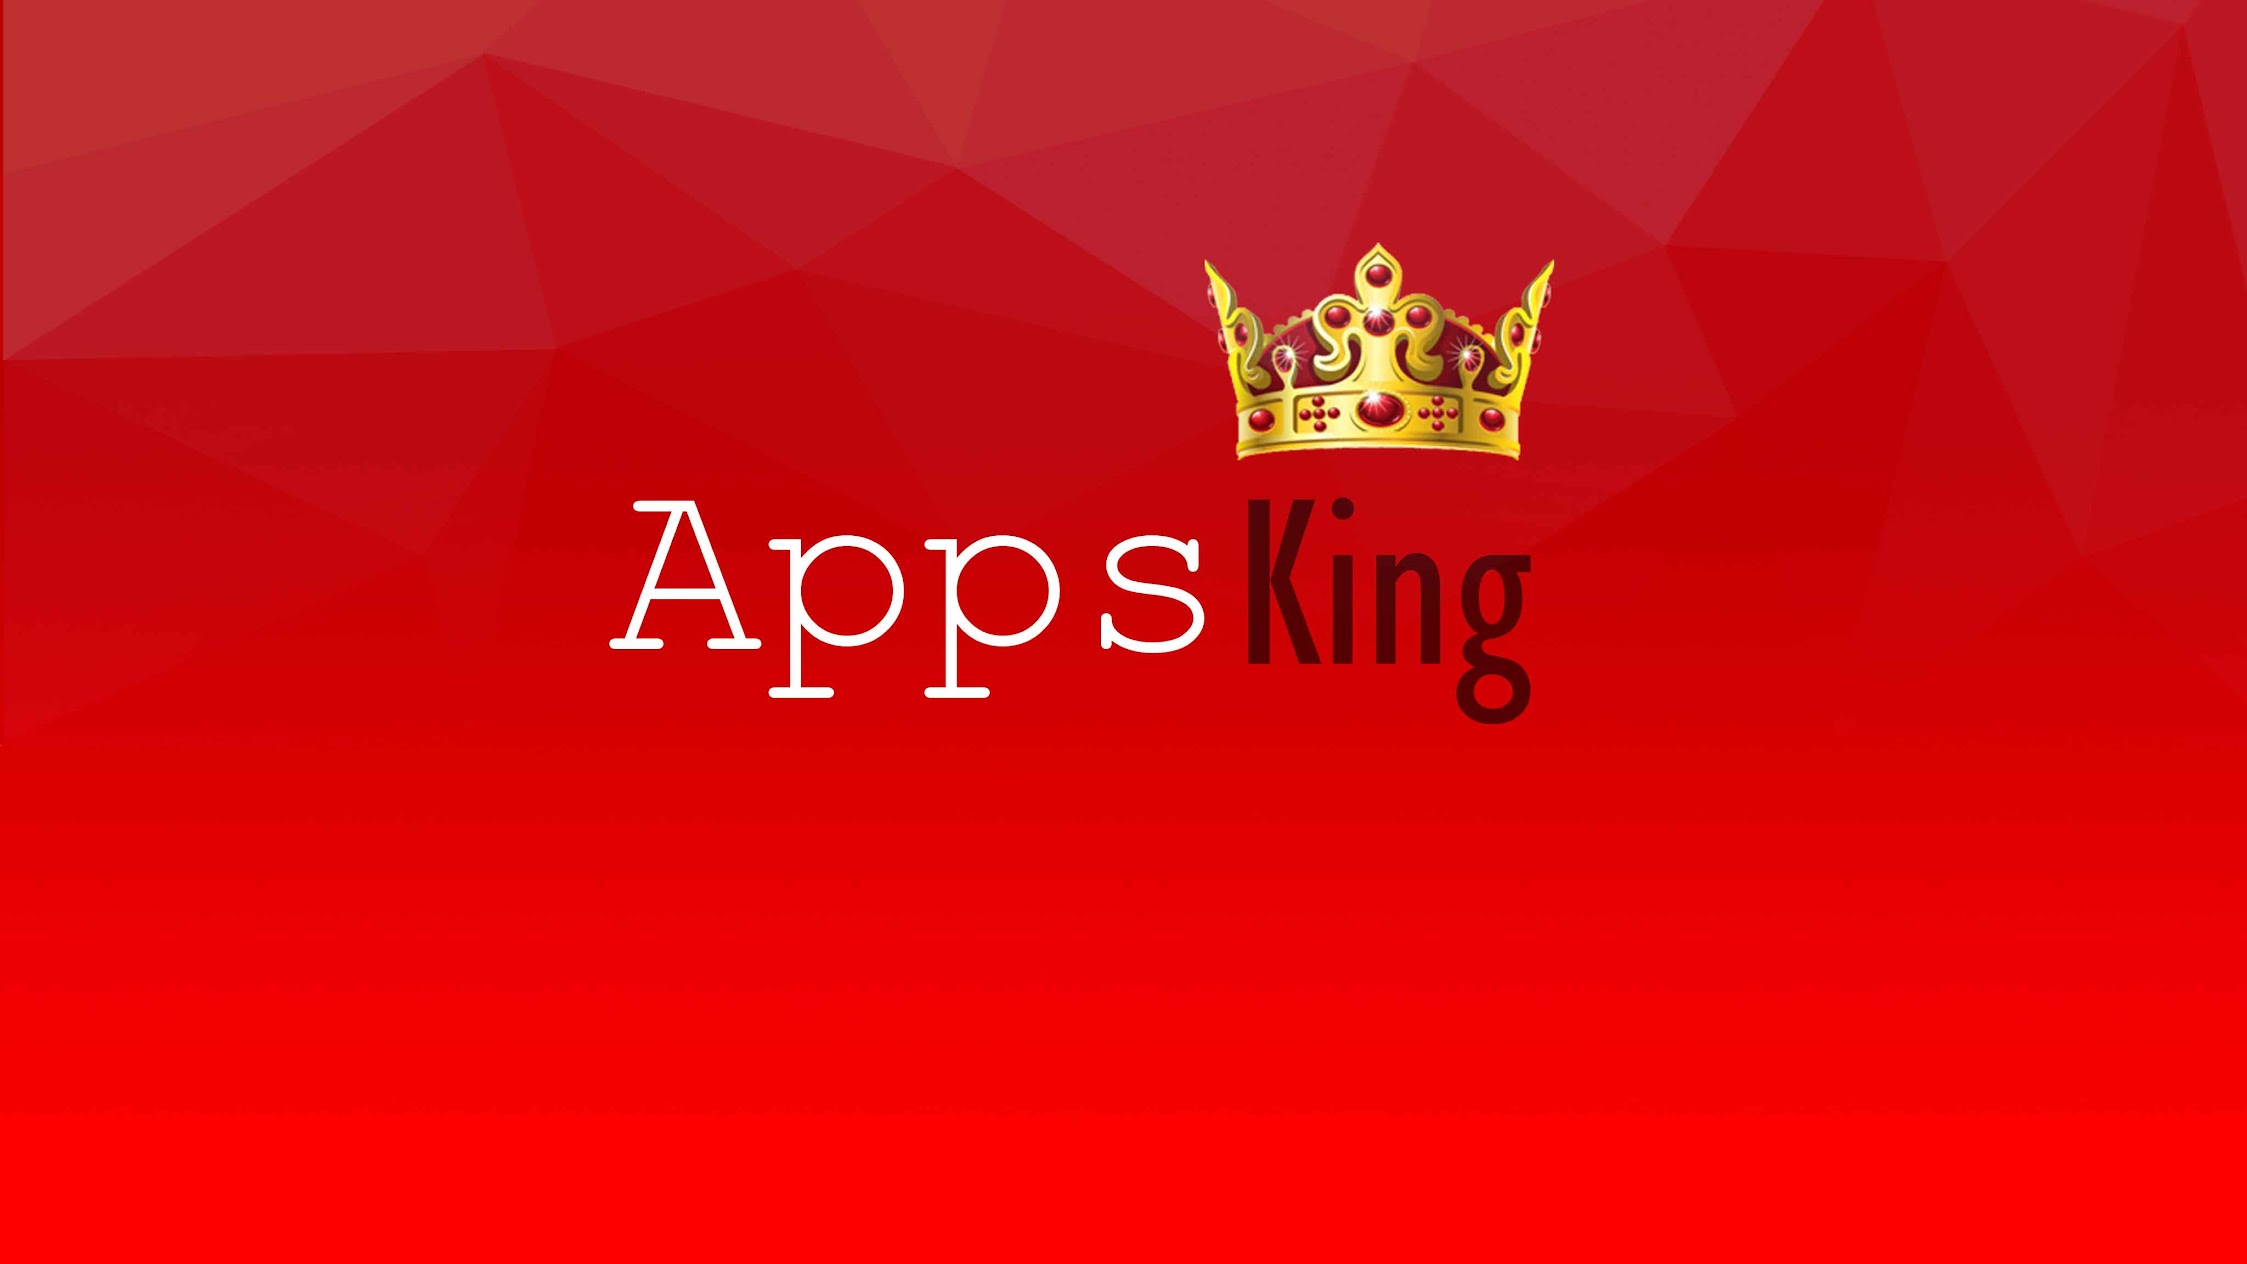 Apps Kings